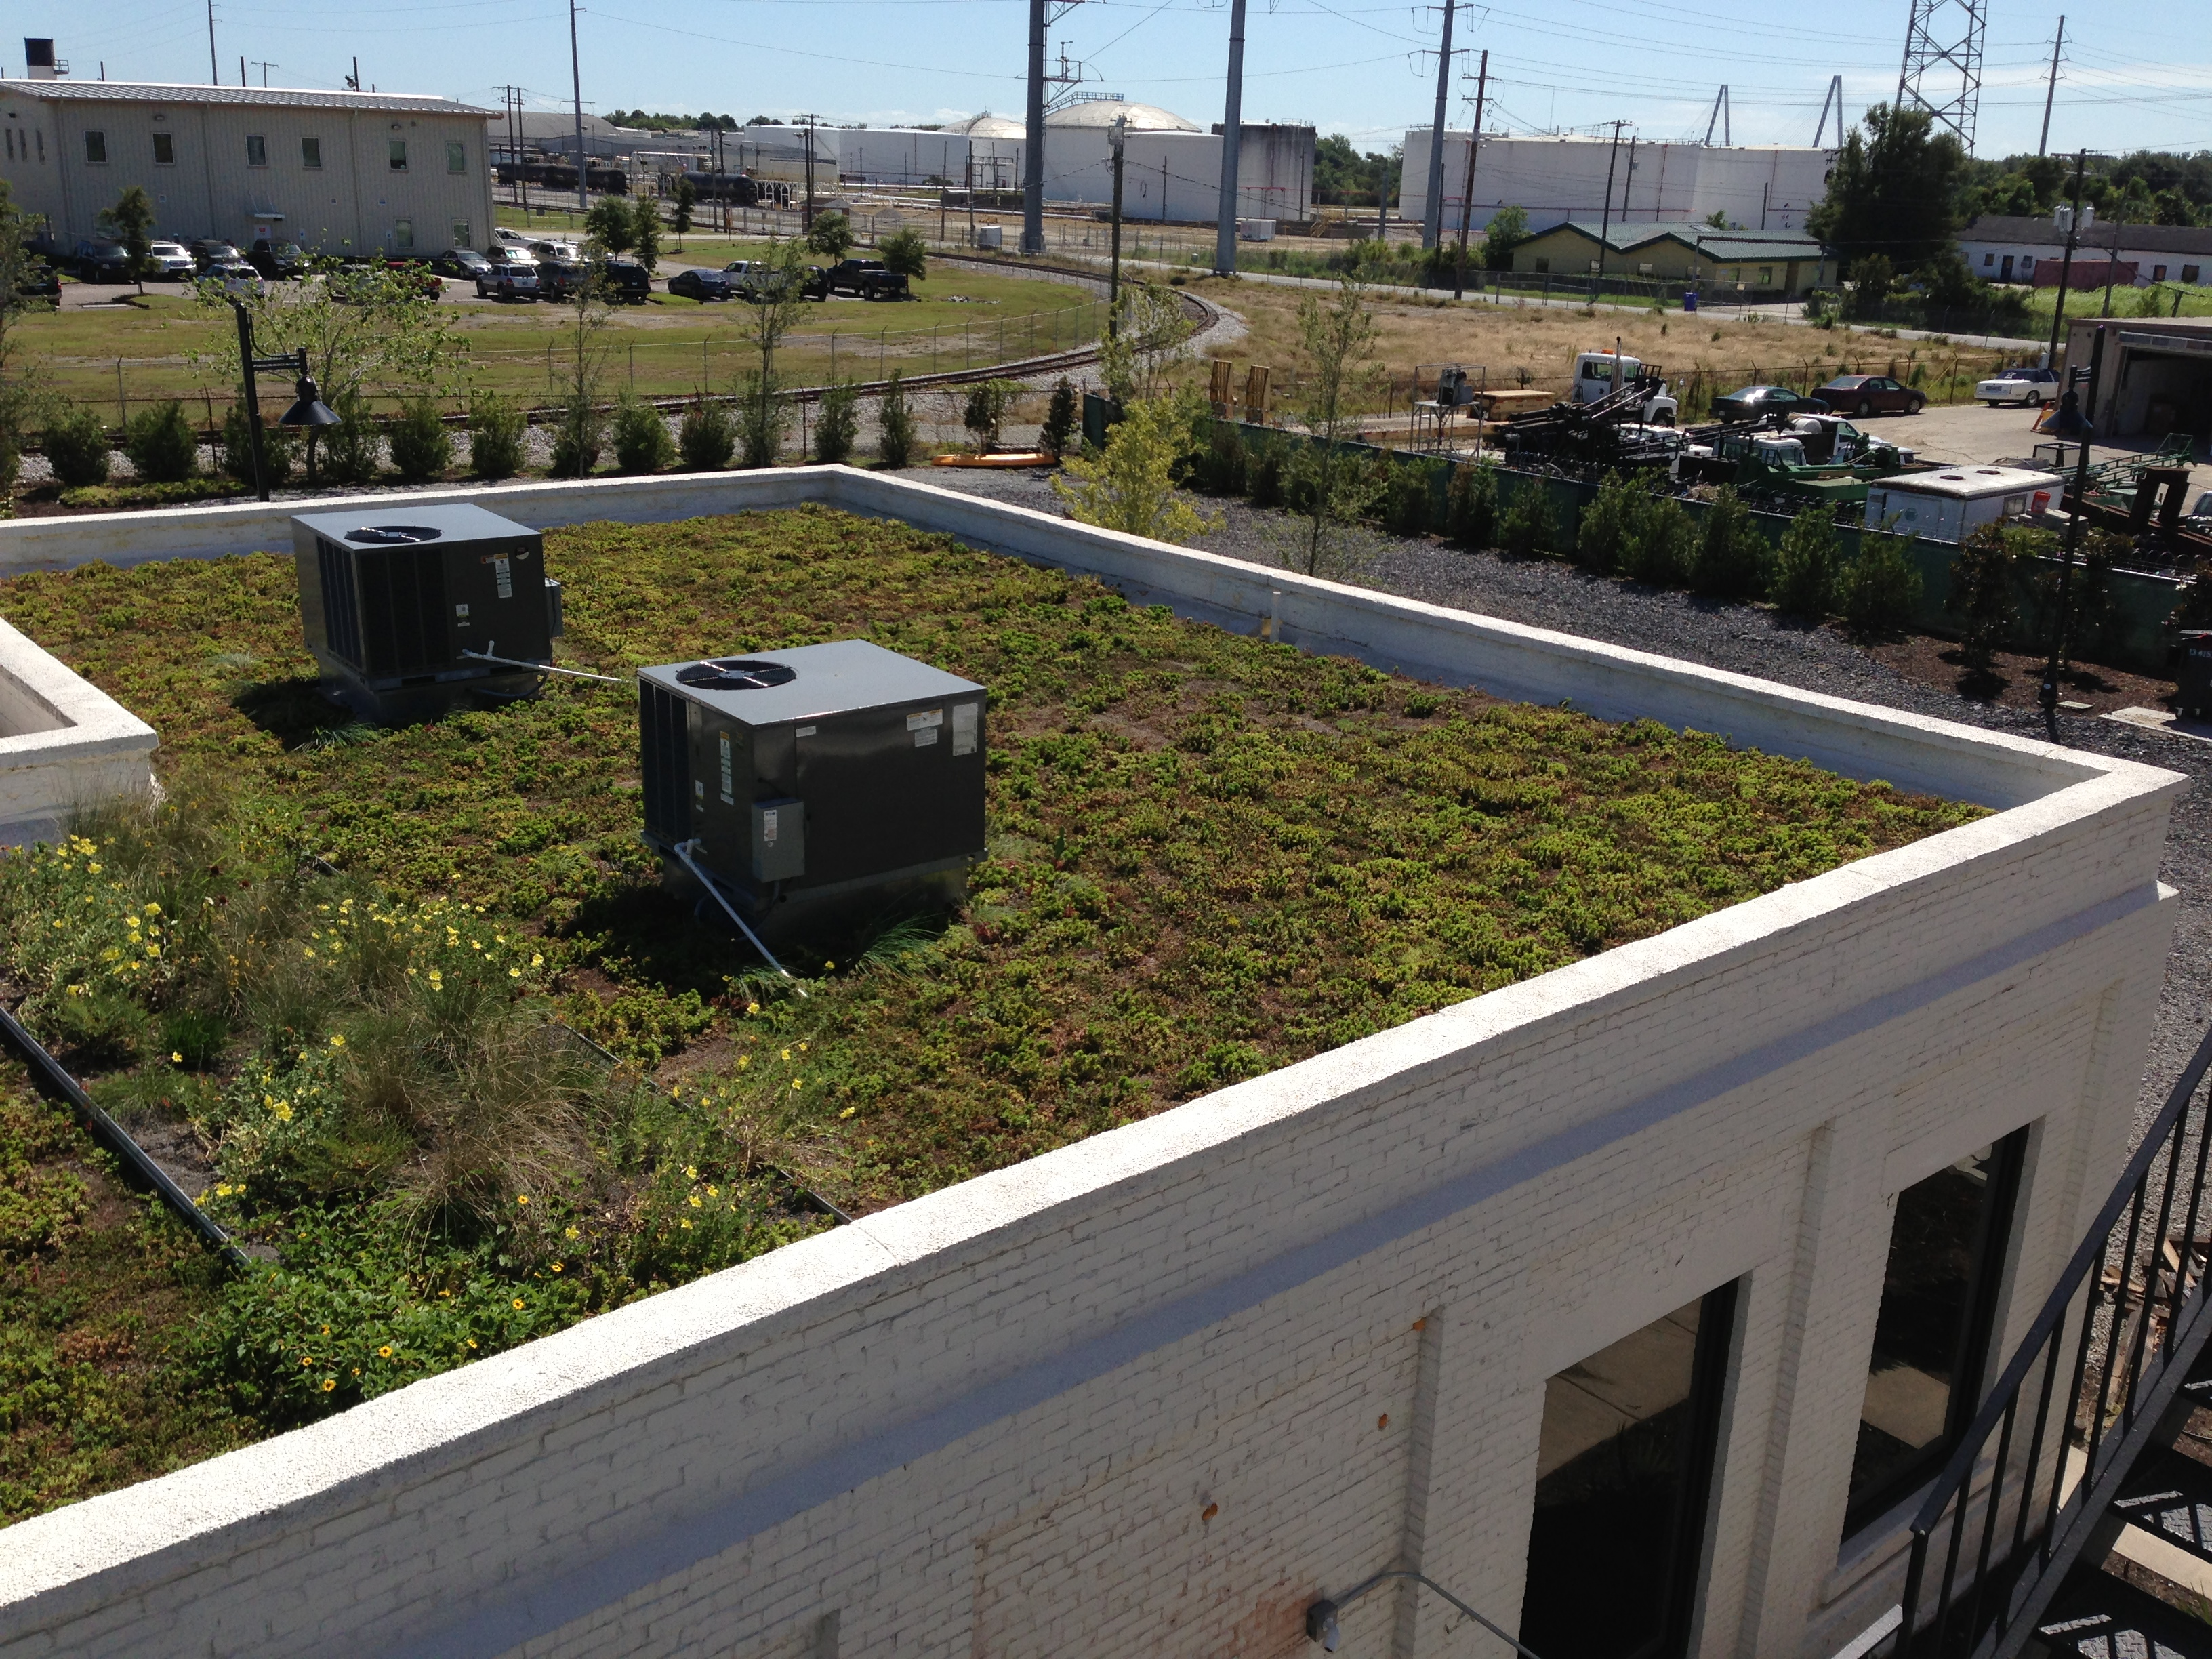 Greenroof at Local Works plant pic 8.25.14.jpg